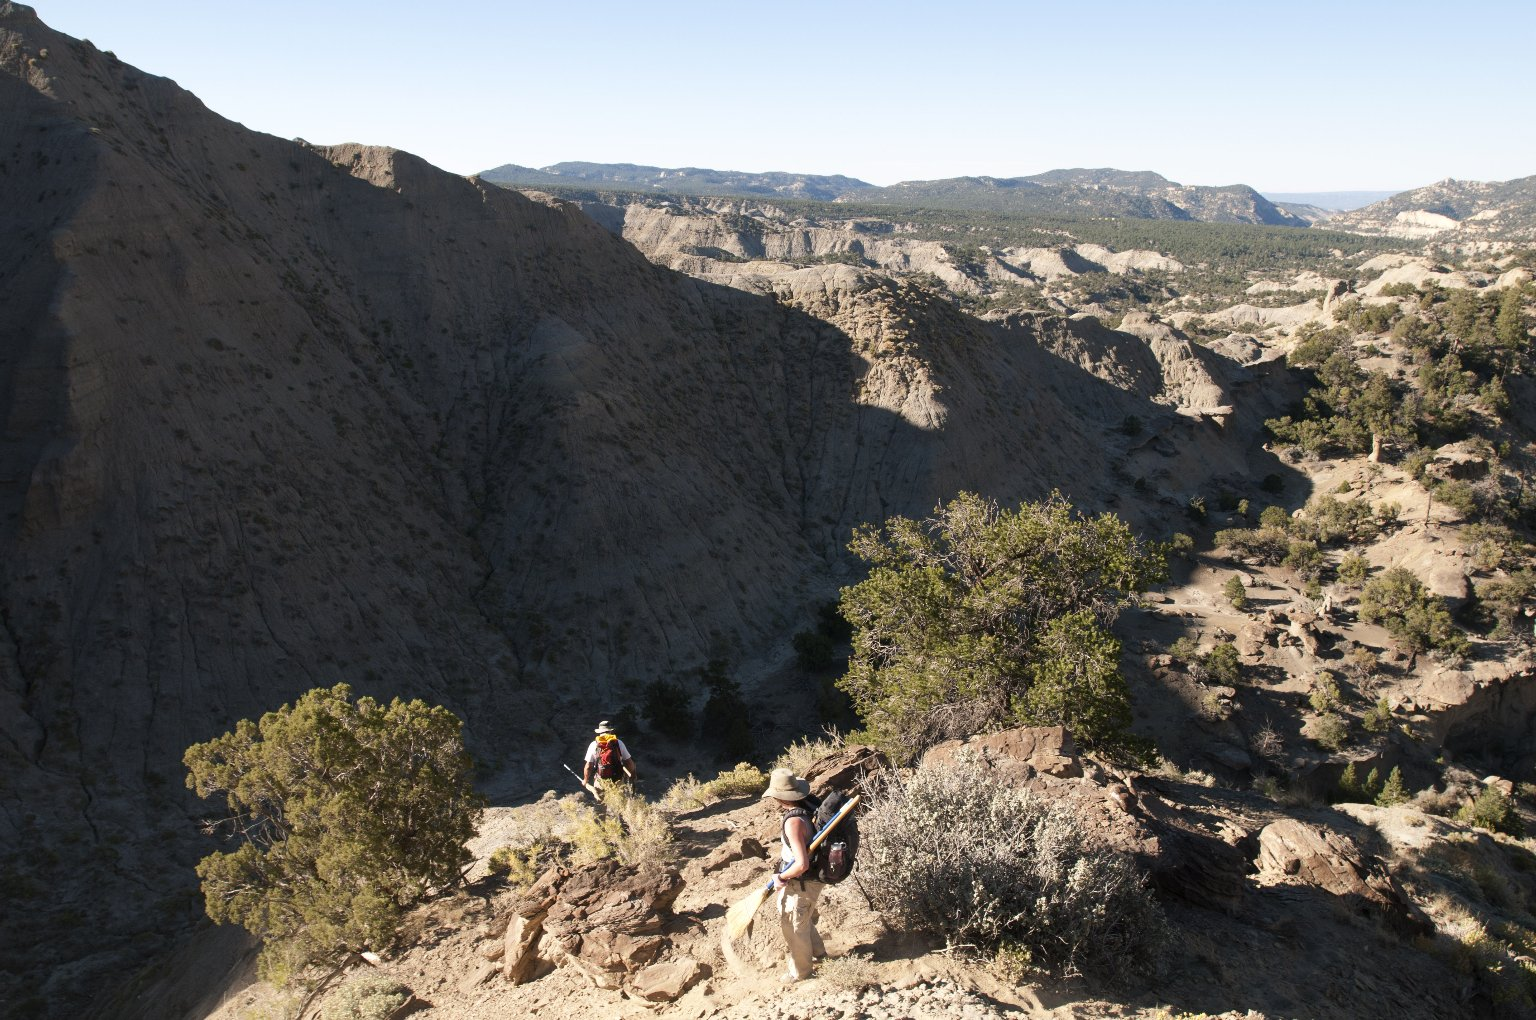 Dr. Kirk Johnson and DMNS volunteer Cynthia Russell descend into a canyon in the Kaiparowits Plateau.